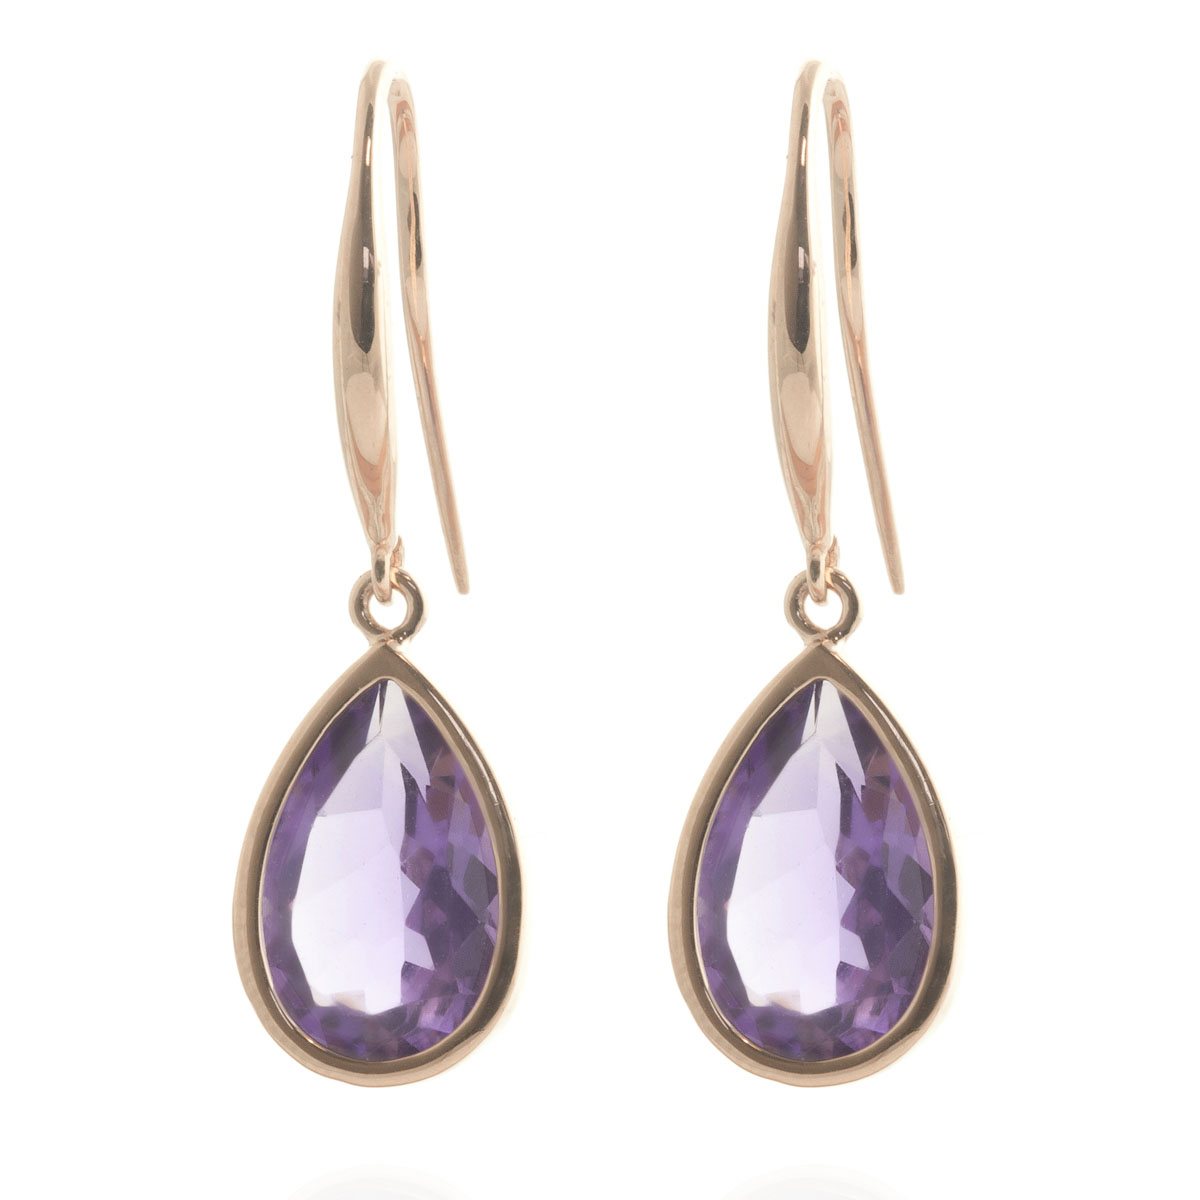 Amethyst Elliptical Drop Earrings 5 ctw in 9ct Rose Gold